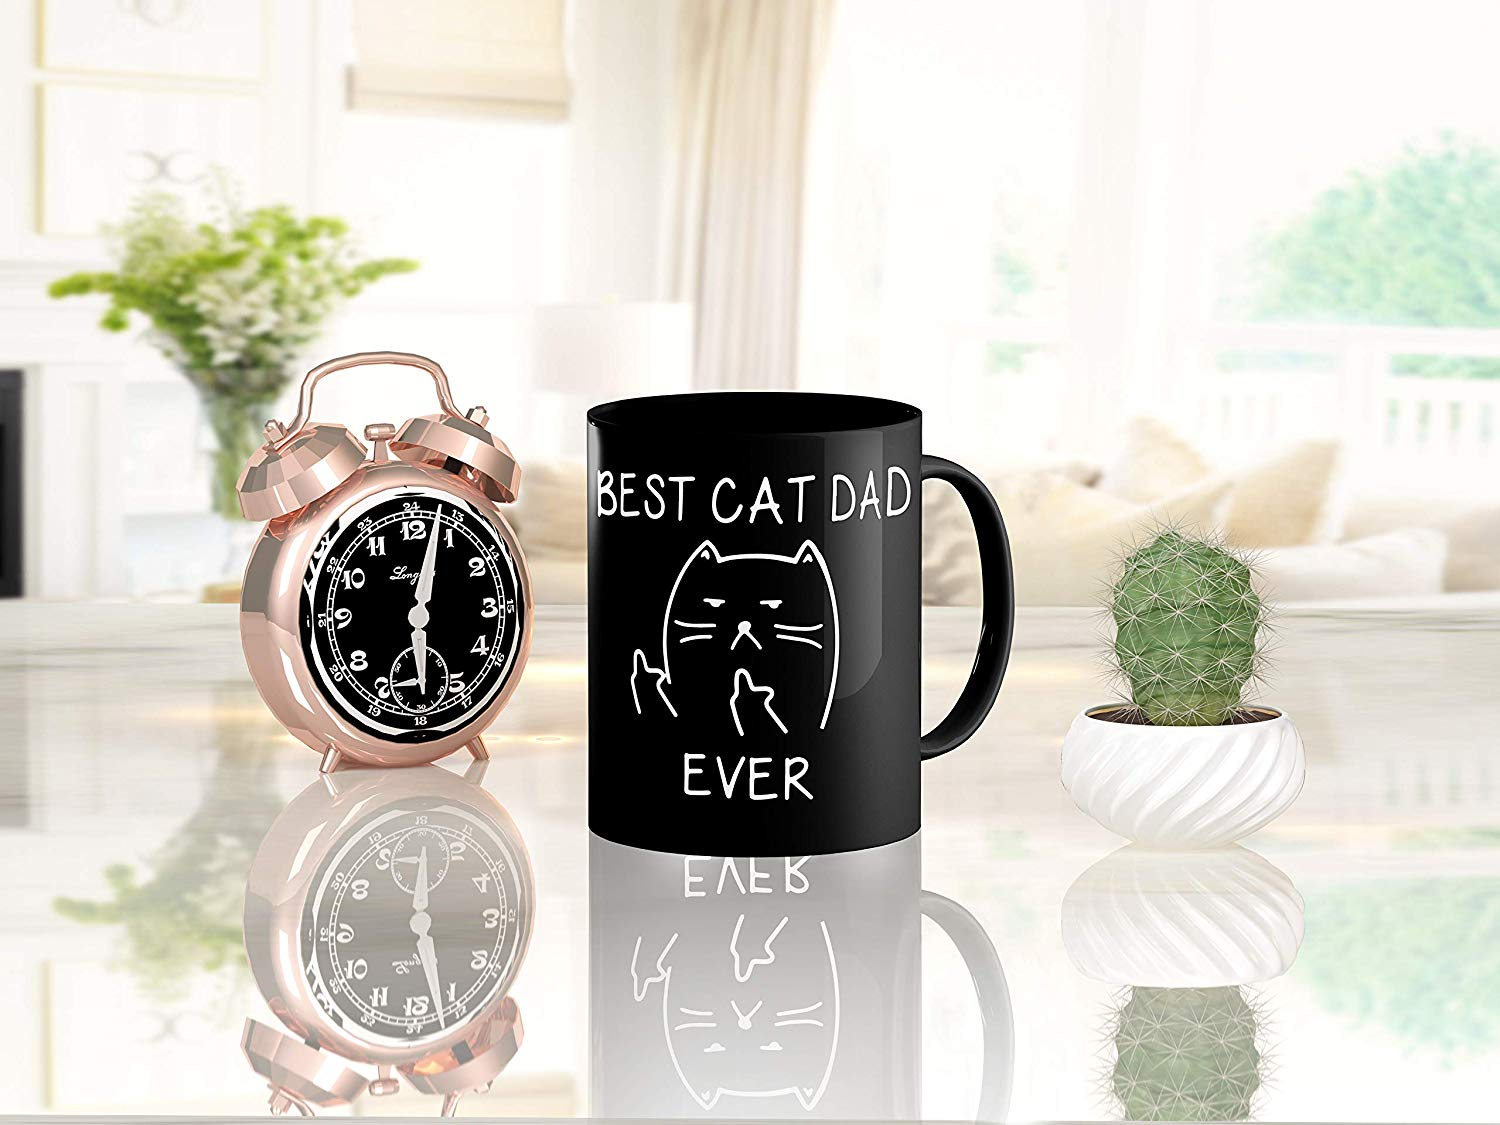 Best Cat Dad EverFunny Cat Lover Gifts Funny Middle Finger Black Coffee MugUnique Birthday Gift For Dad B079FVKRCM 6